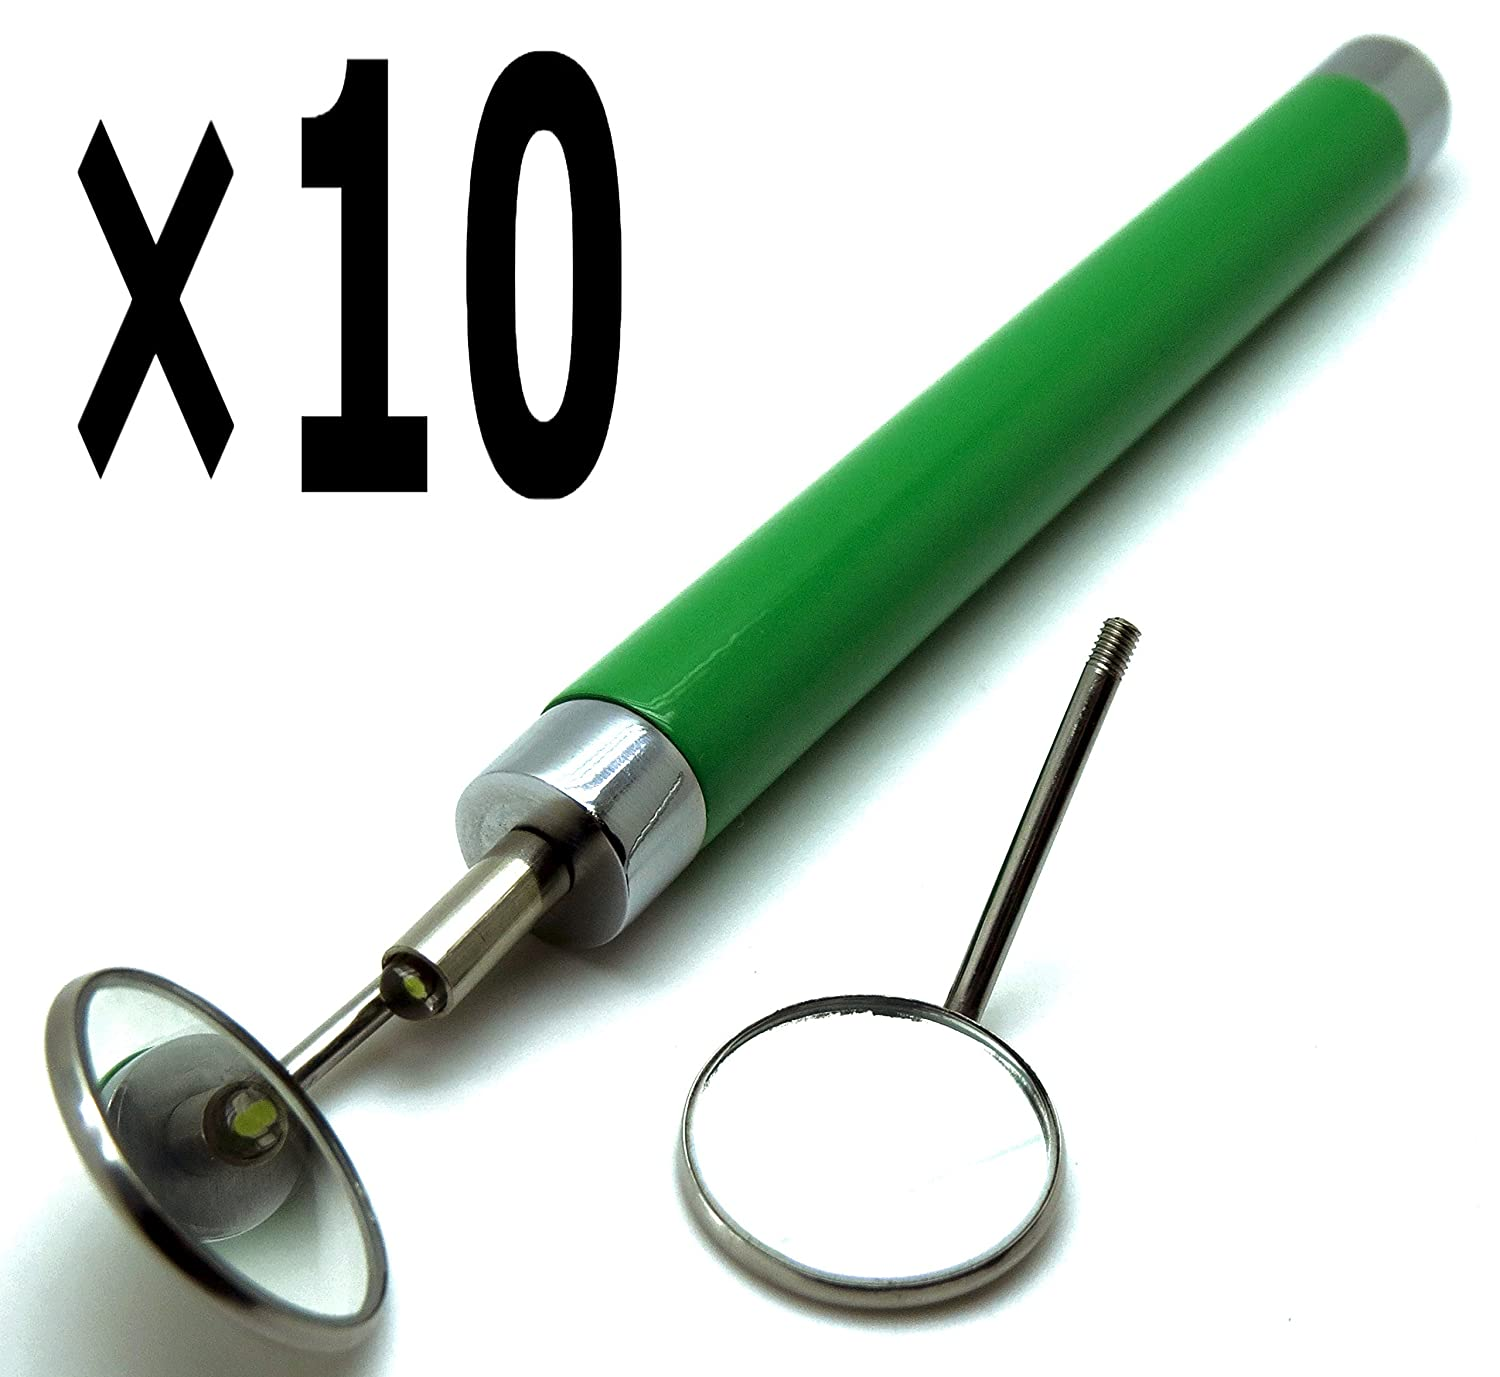 Soldering 10 Special price Pcs Dental Light Mirror Green Mirrors Removable #5 Exa Handle